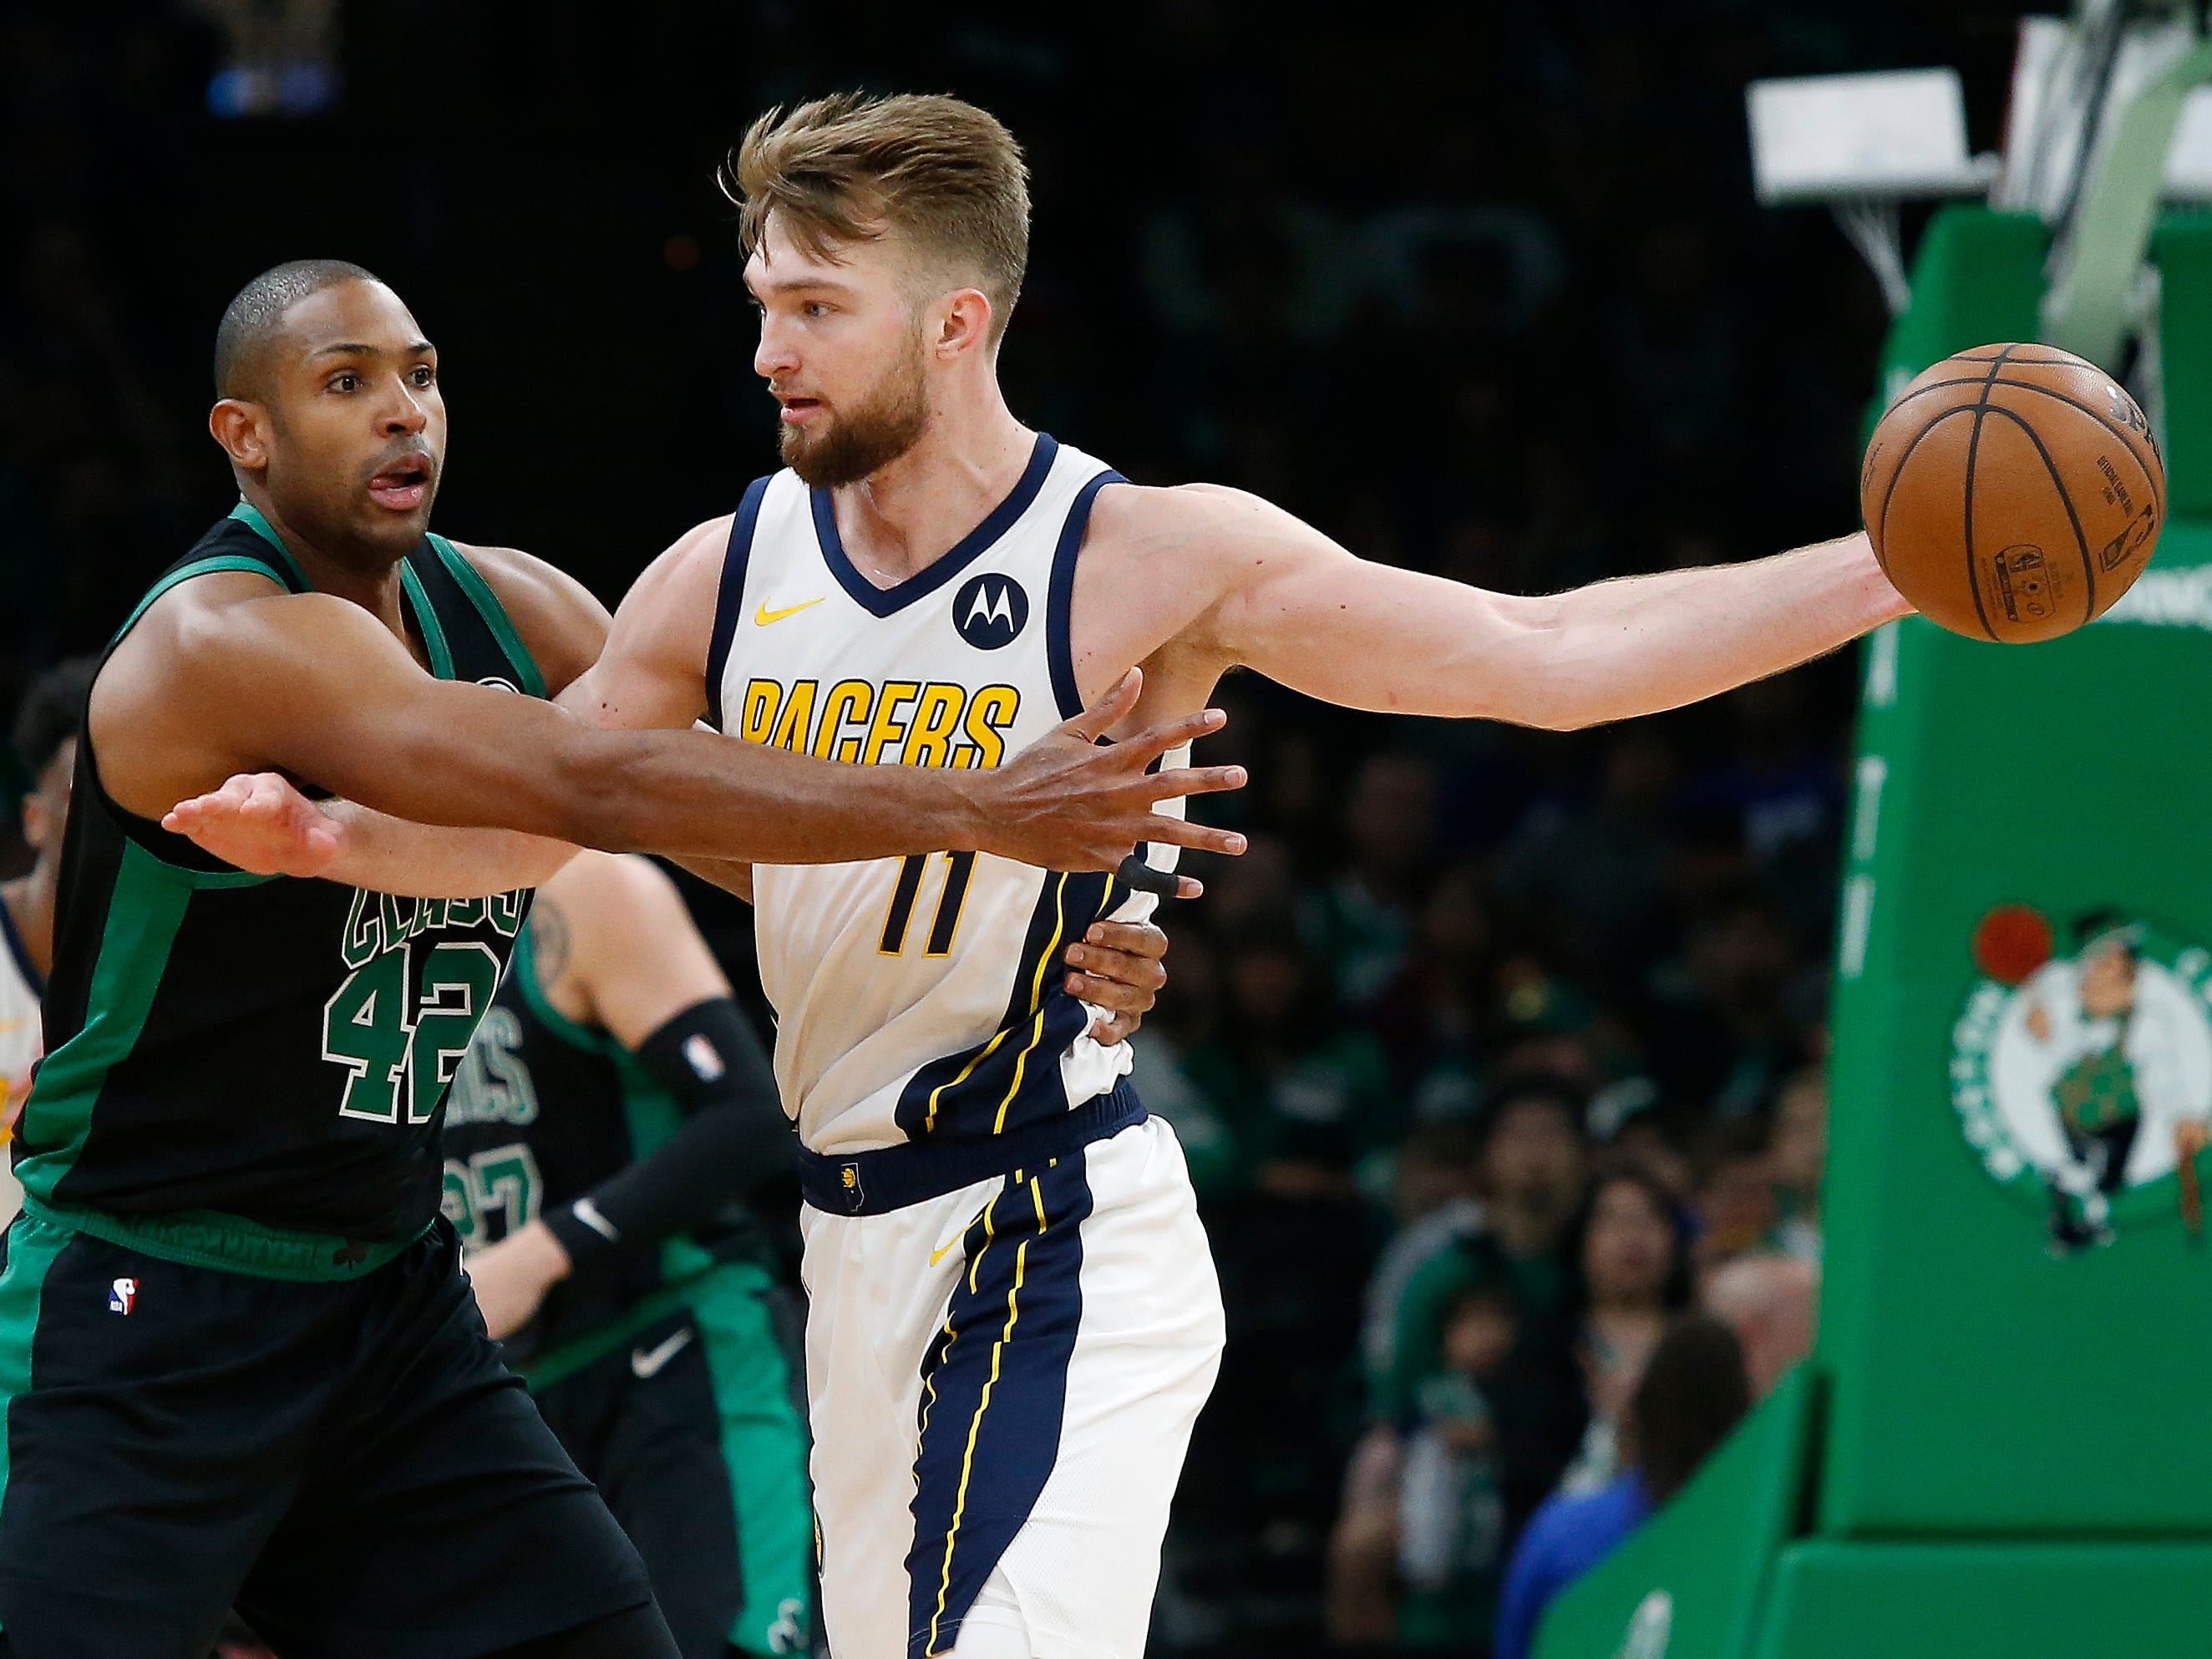 Indiana Pacers' Domantas Sabonis holds the ball away from Boston Celtics' Al Horford during the second quarter in Game 1 of a first-round NBA basketball playoff series, Sunday, April 14, 2019, in Boston.